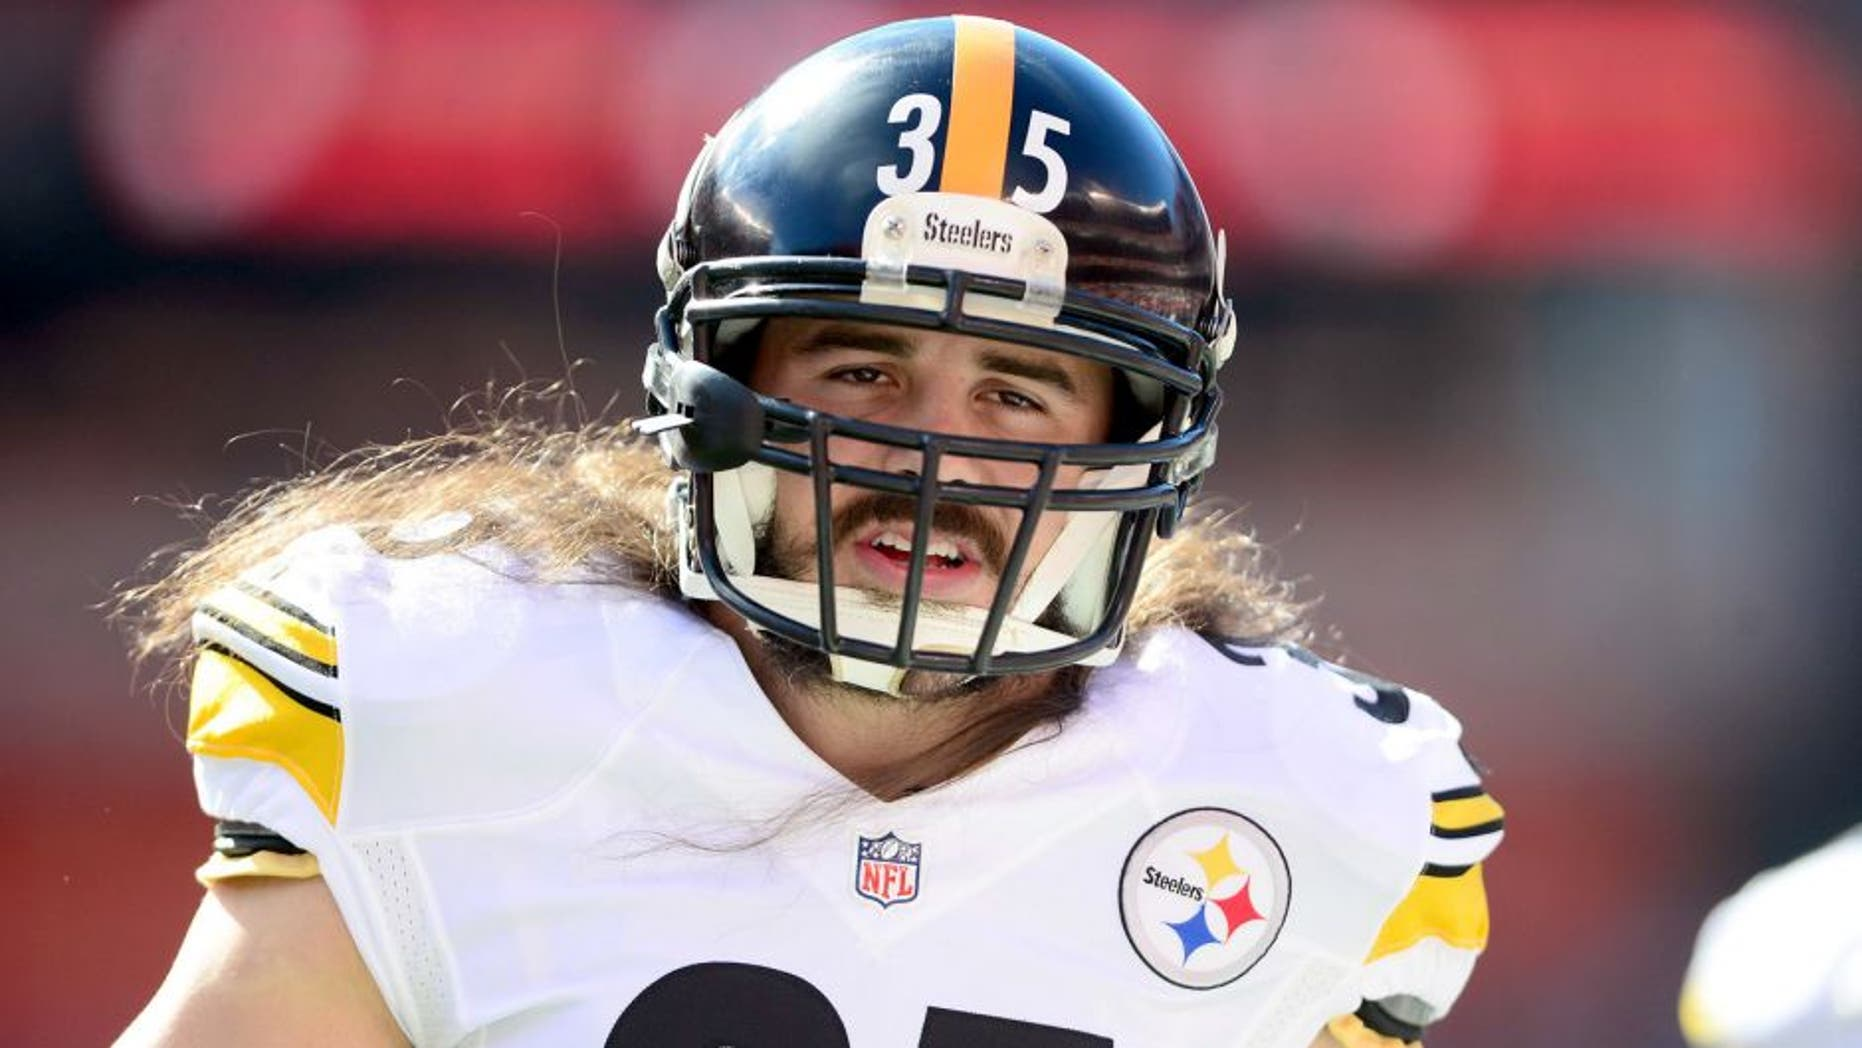 Oct 12, 2014; Cleveland, OH, USA; Pittsburgh Steelers safety Ross Ventrone (35) against the Cleveland Browns at FirstEnergy Stadium. Mandatory Credit: Andrew Weber-USA TODAY Sports